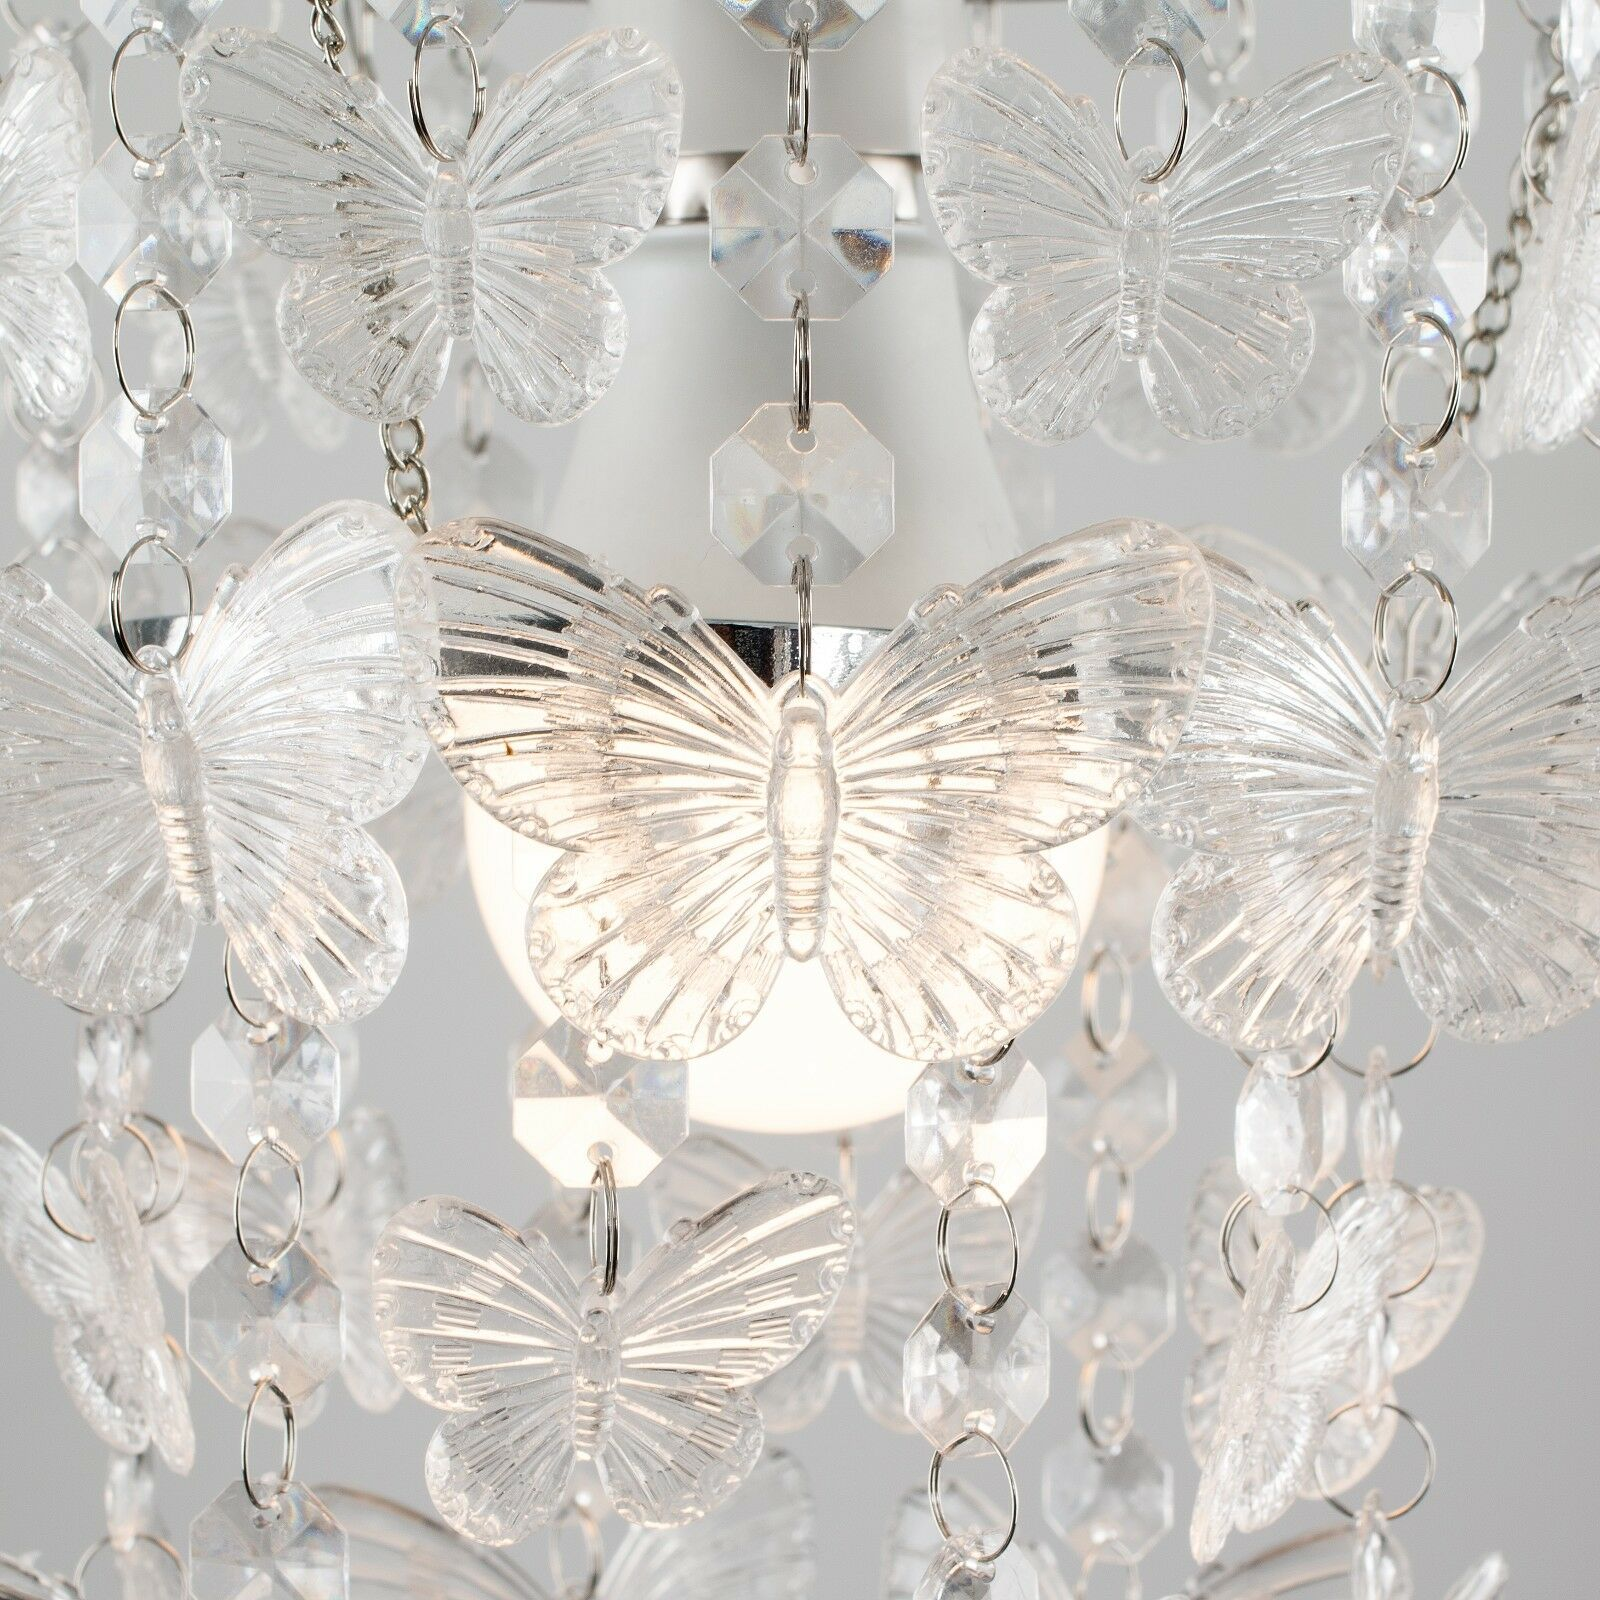 Modern-Acrylic-Crystal-Ceiling-Pendant-Light-Shade-Jewel-Chandeliers-Shades-NEW thumbnail 25